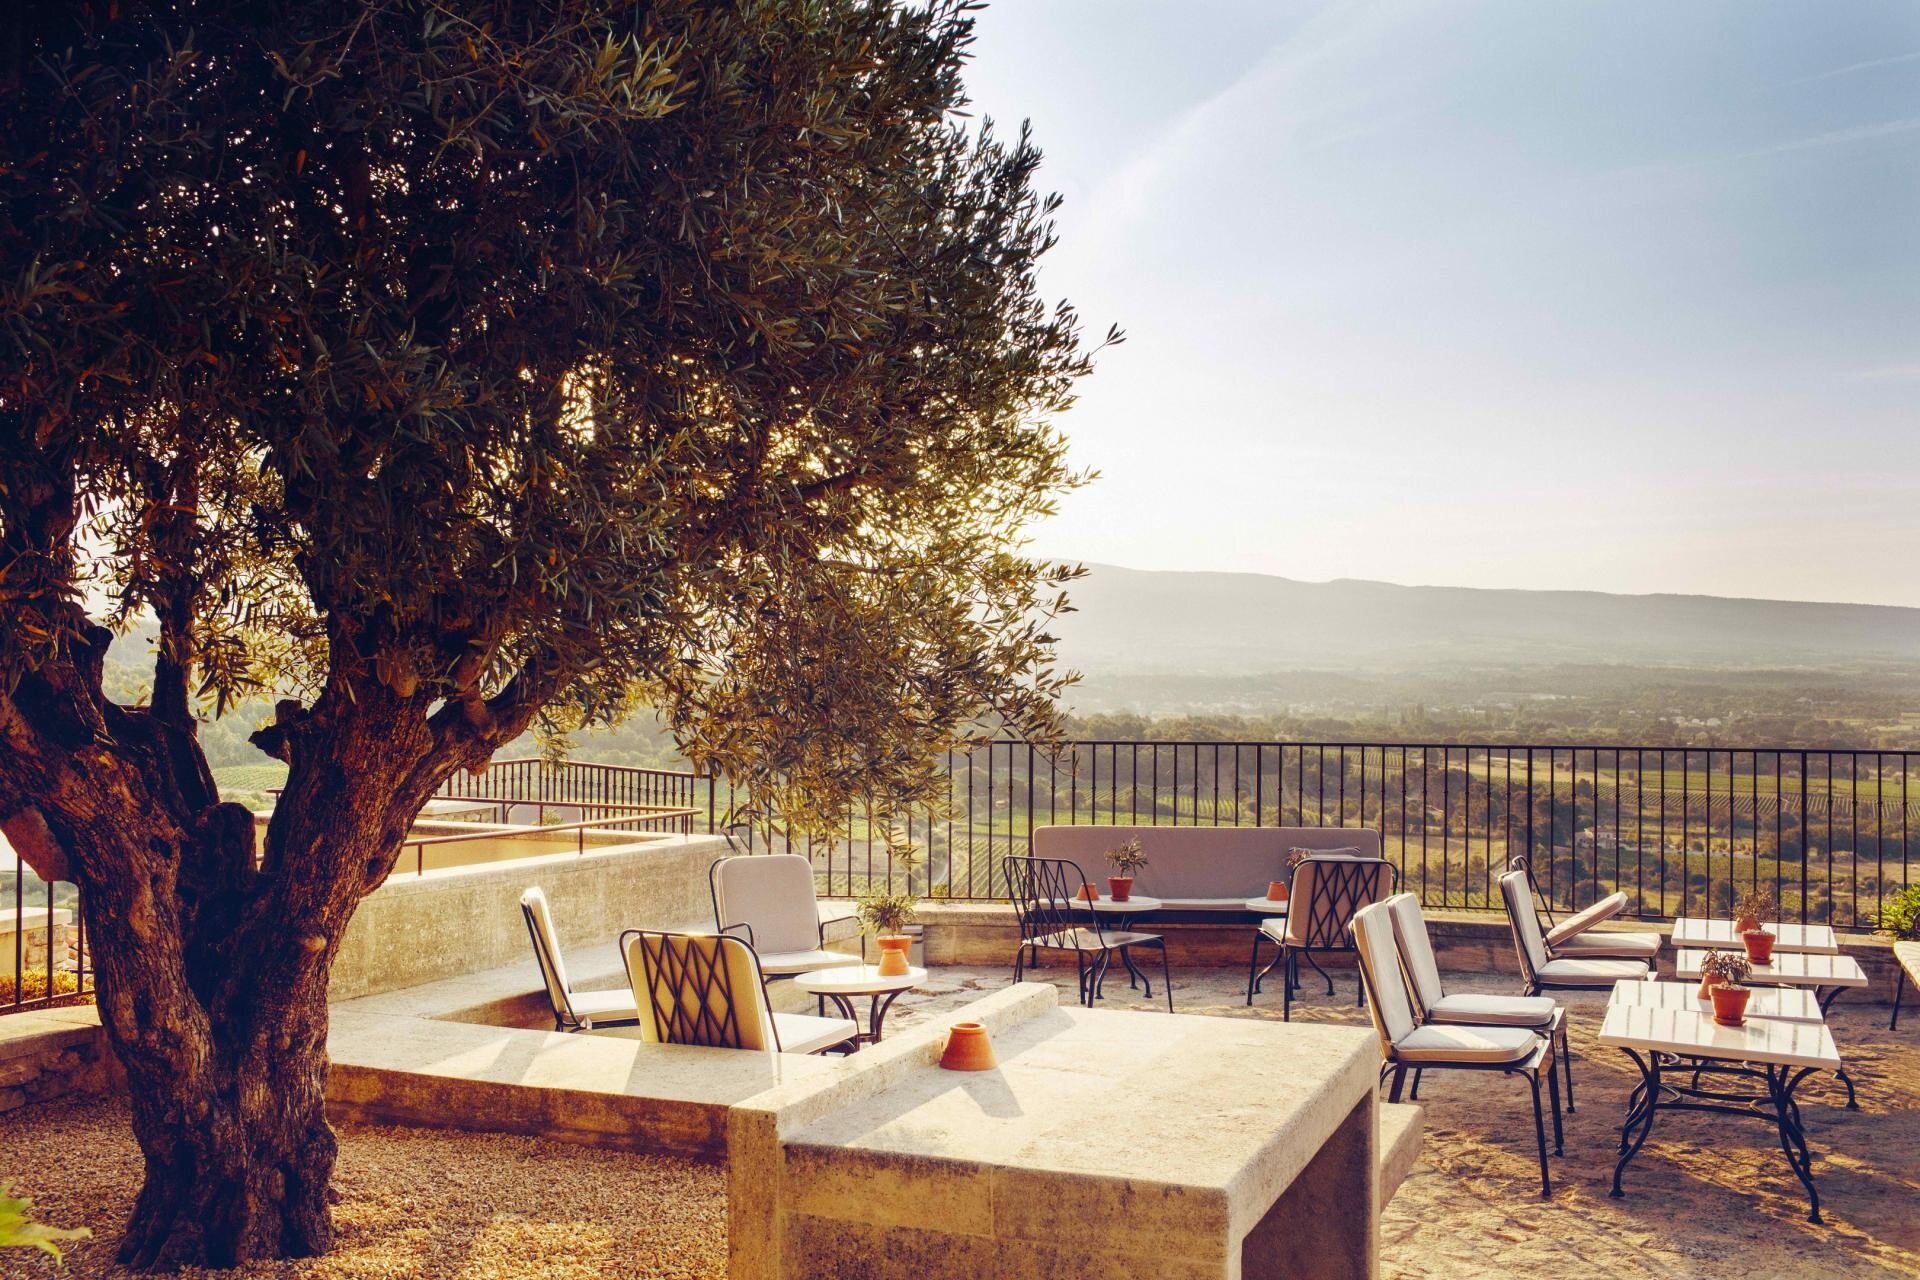 Hotel Crillon Le Brave Soul Of Provence Enhance Your Life